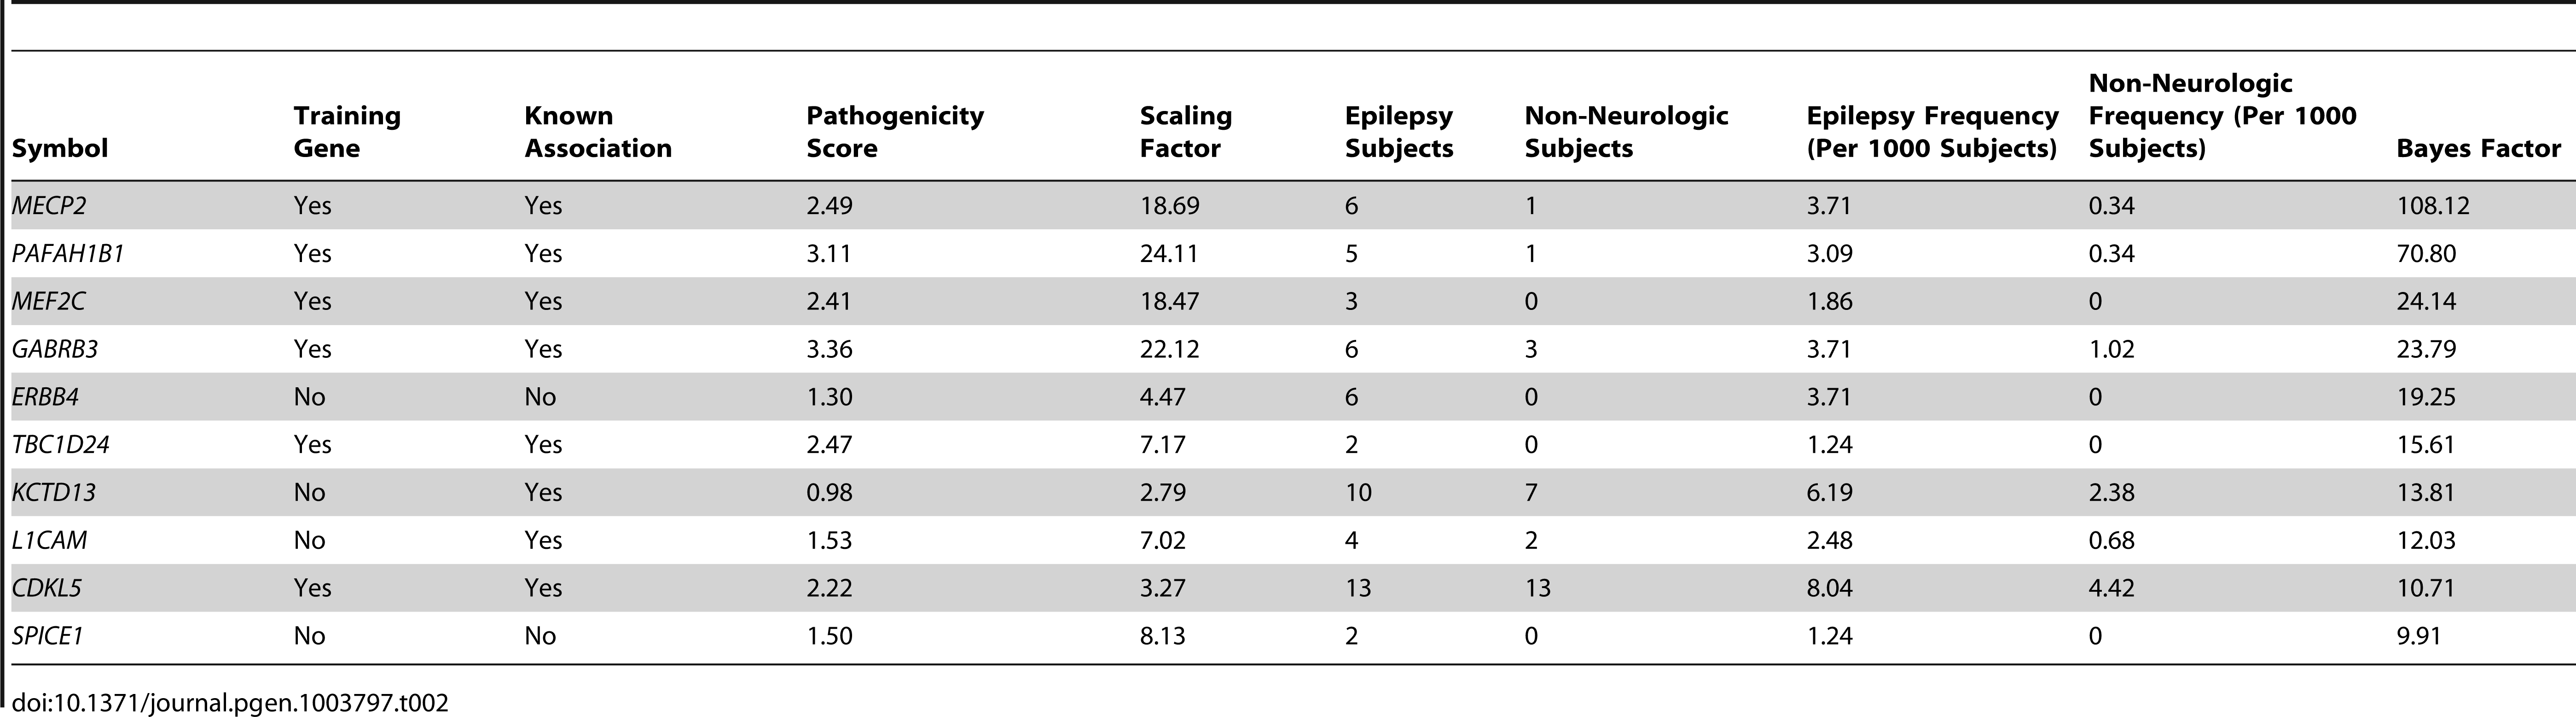 Top ten loci ranked by Bayes factor.